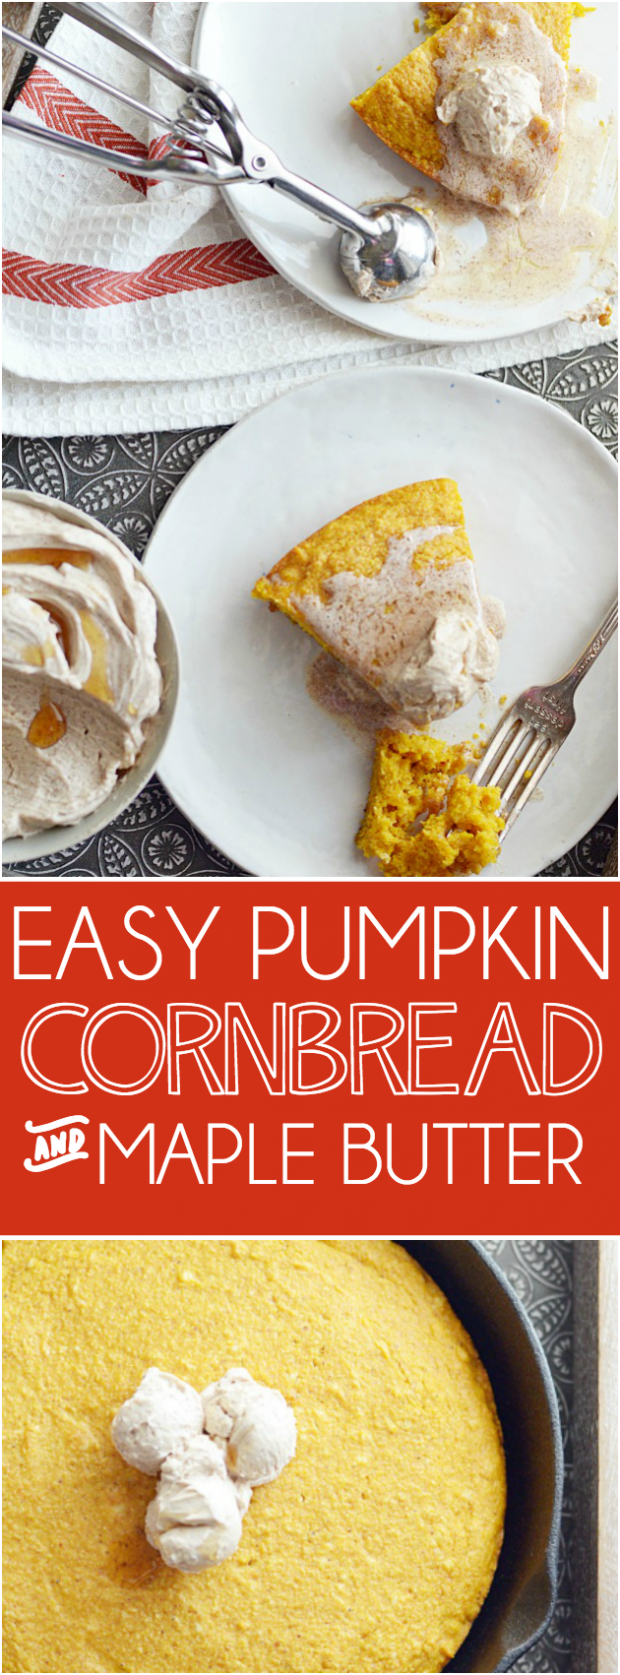 Bursting with pumpkin flavor, tender crumbs, and slathered with a homemade maple cinnamon butter, it's easy for me to say that this will be your favorite pumpkin recipe this fall!